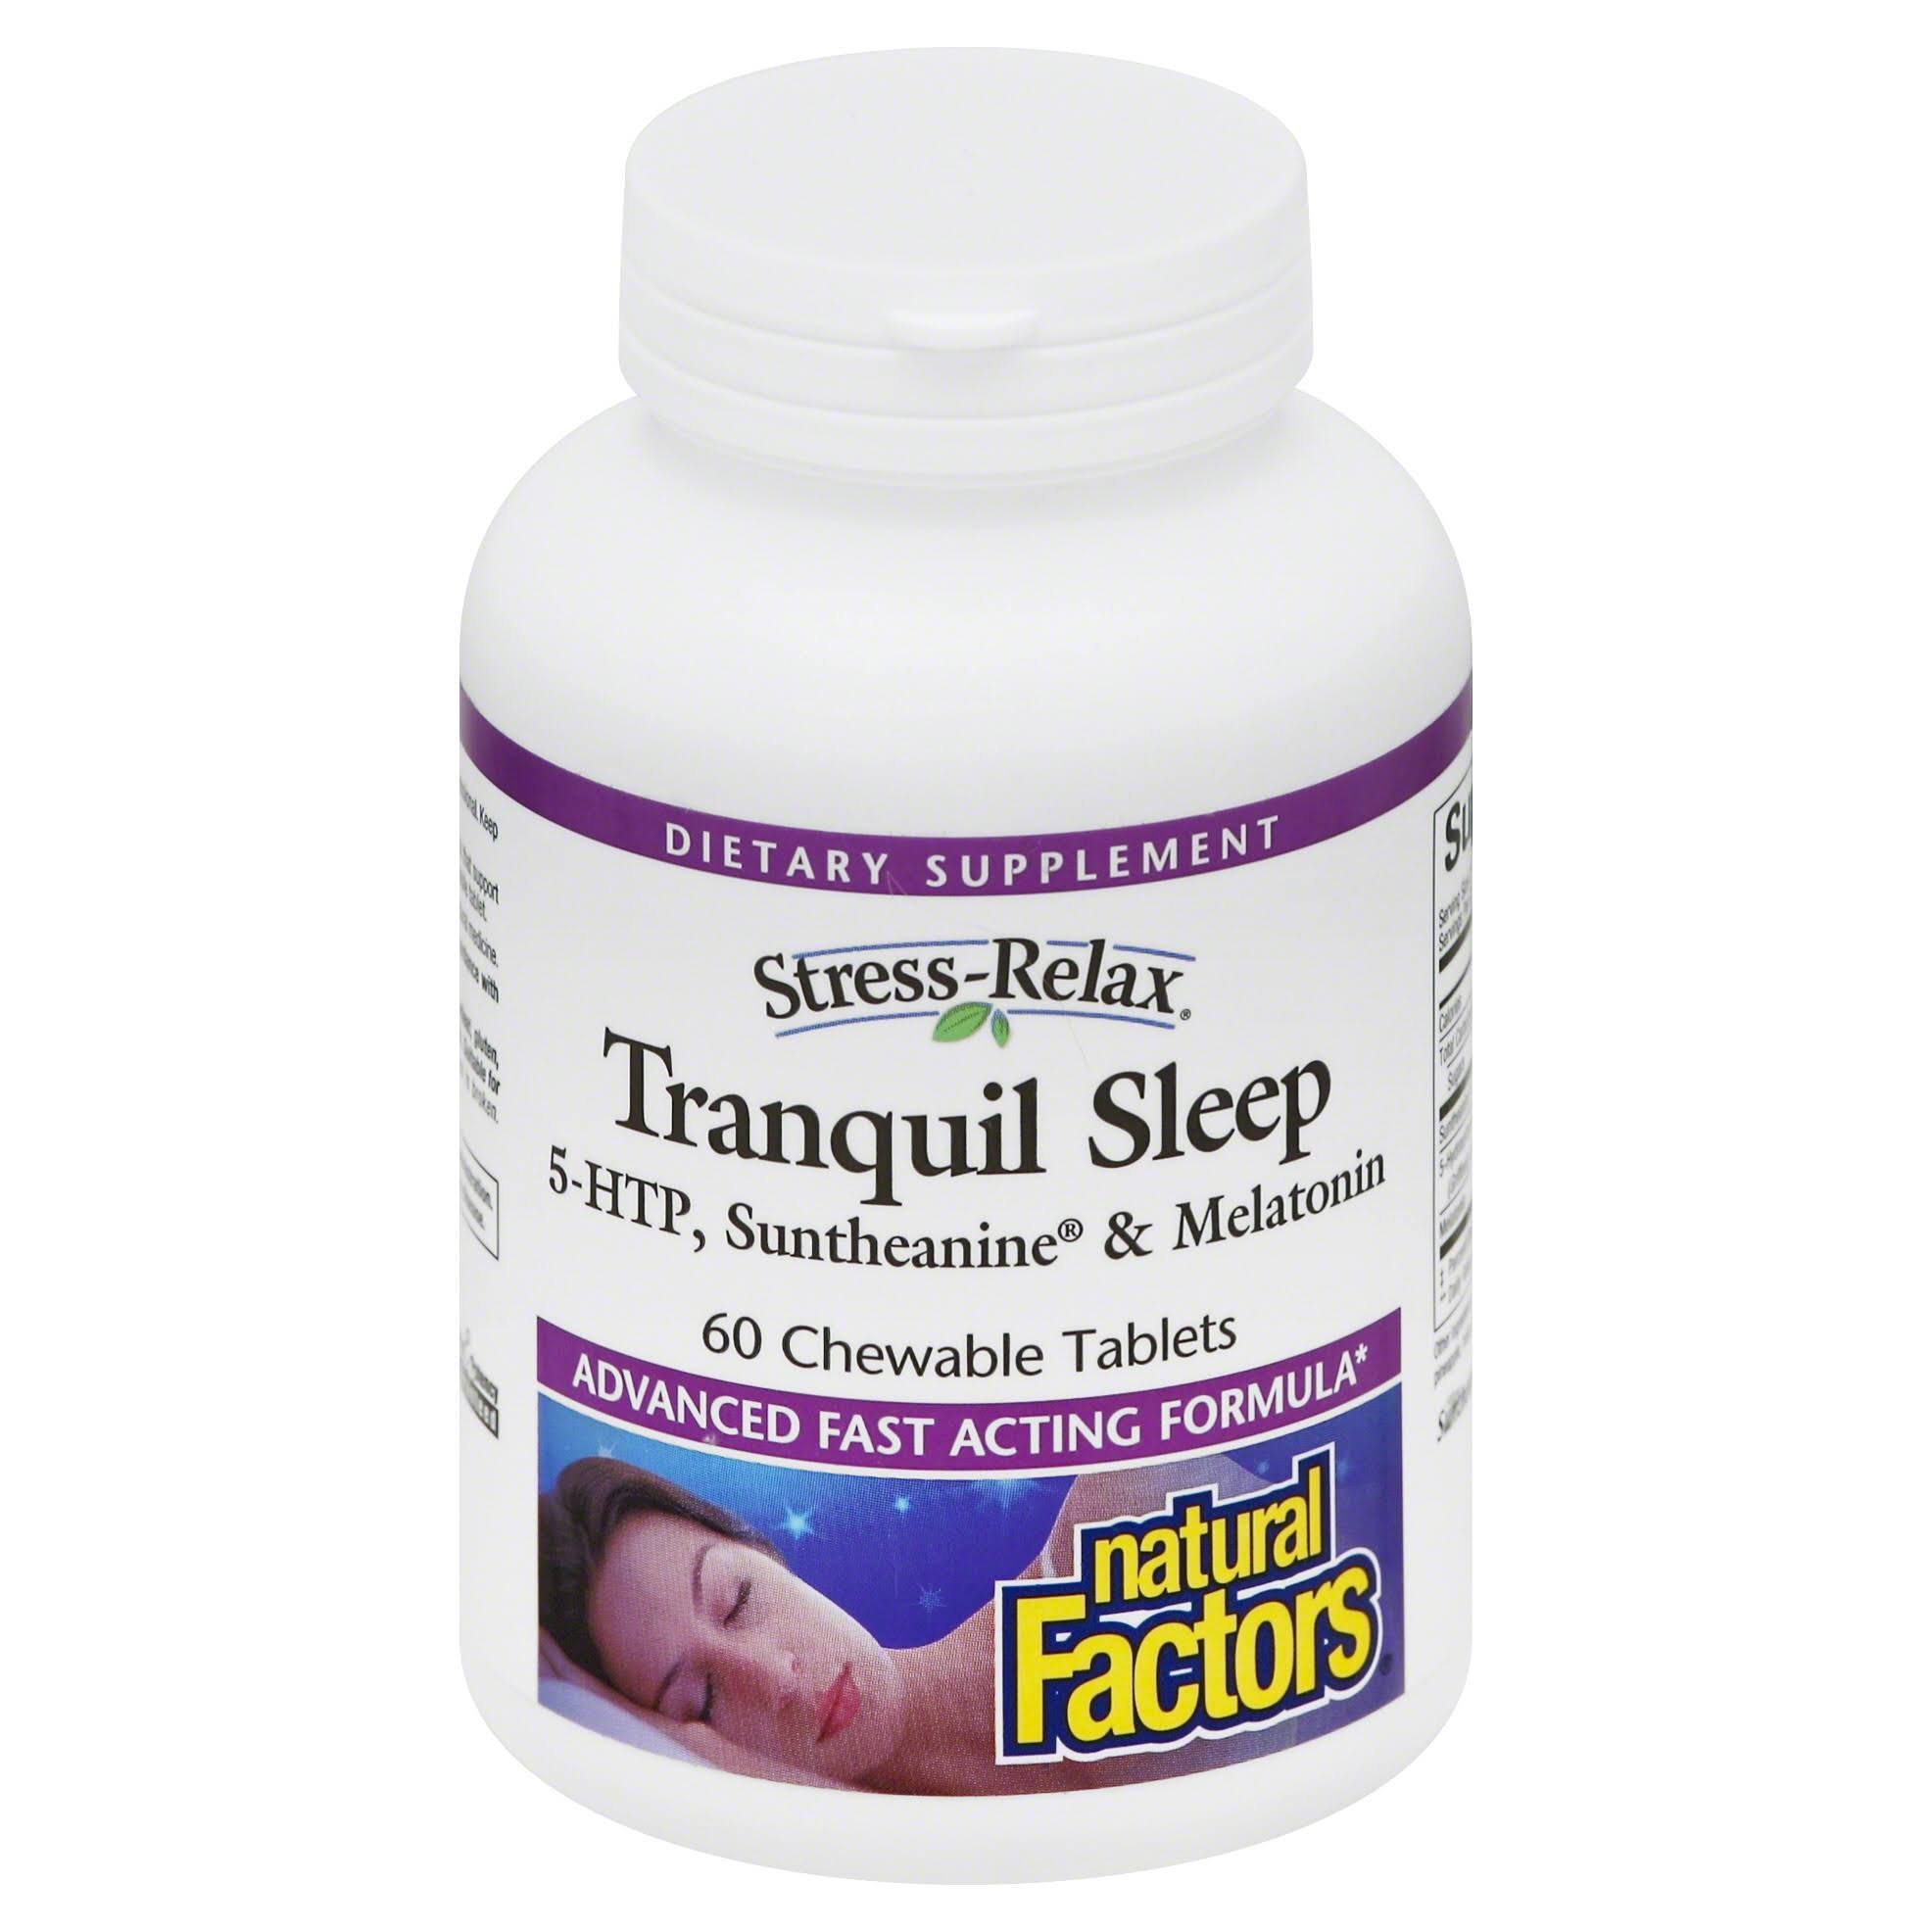 Natural Factors Stress-Relax Tranquil Sleep, Chewable Tablets - 60 count